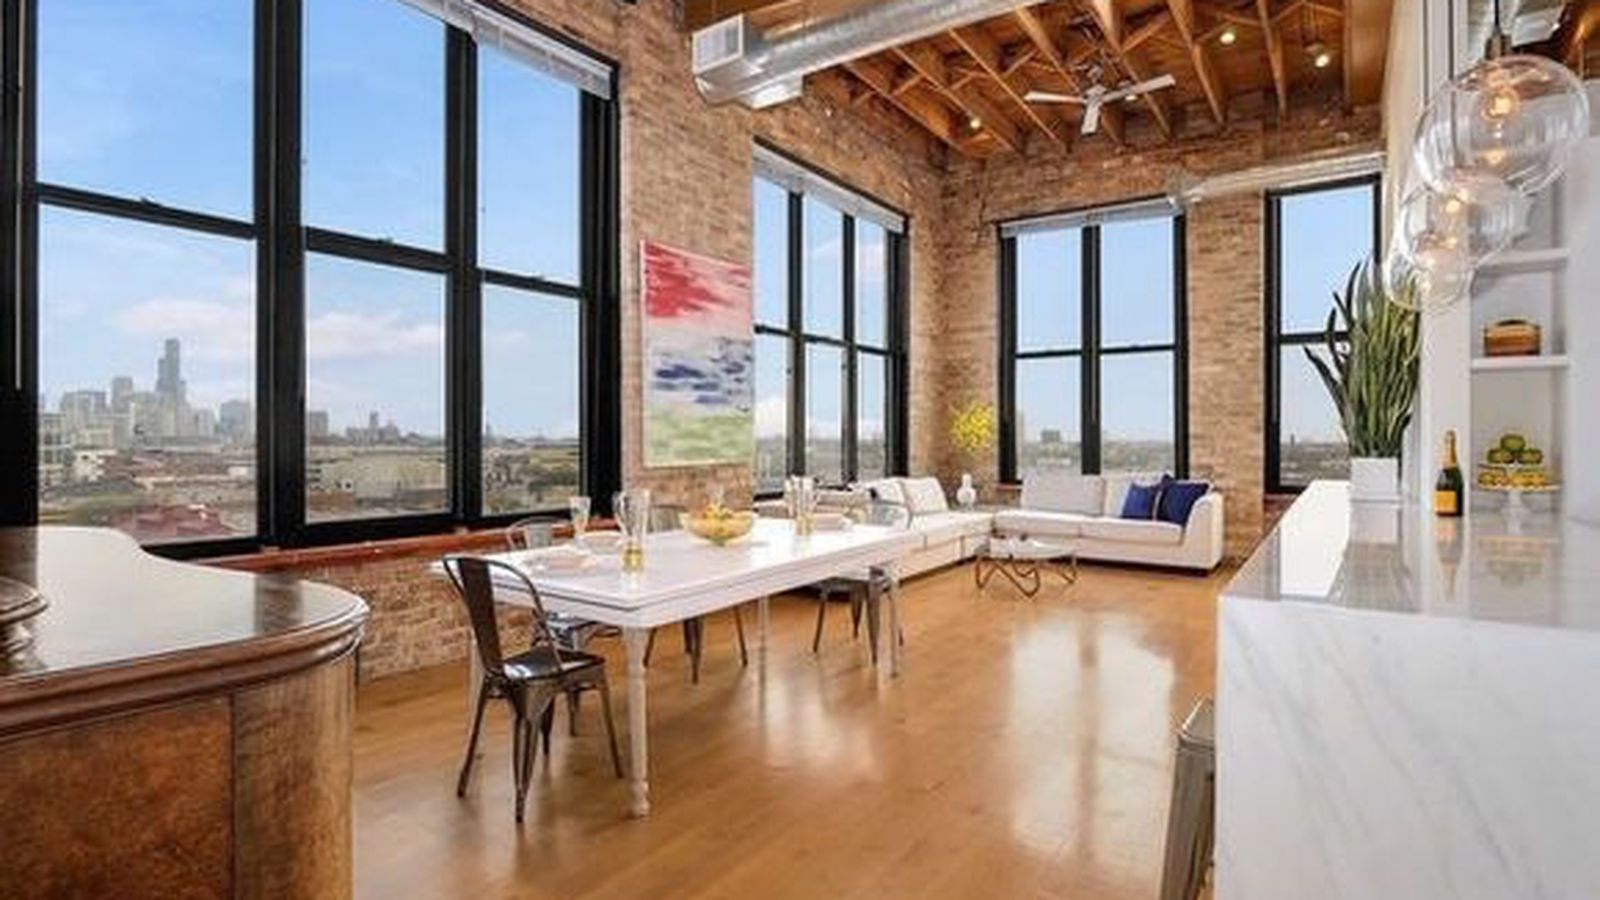 Snazzy Clybourn Corridor Timber Loft Has Sweet Skyline